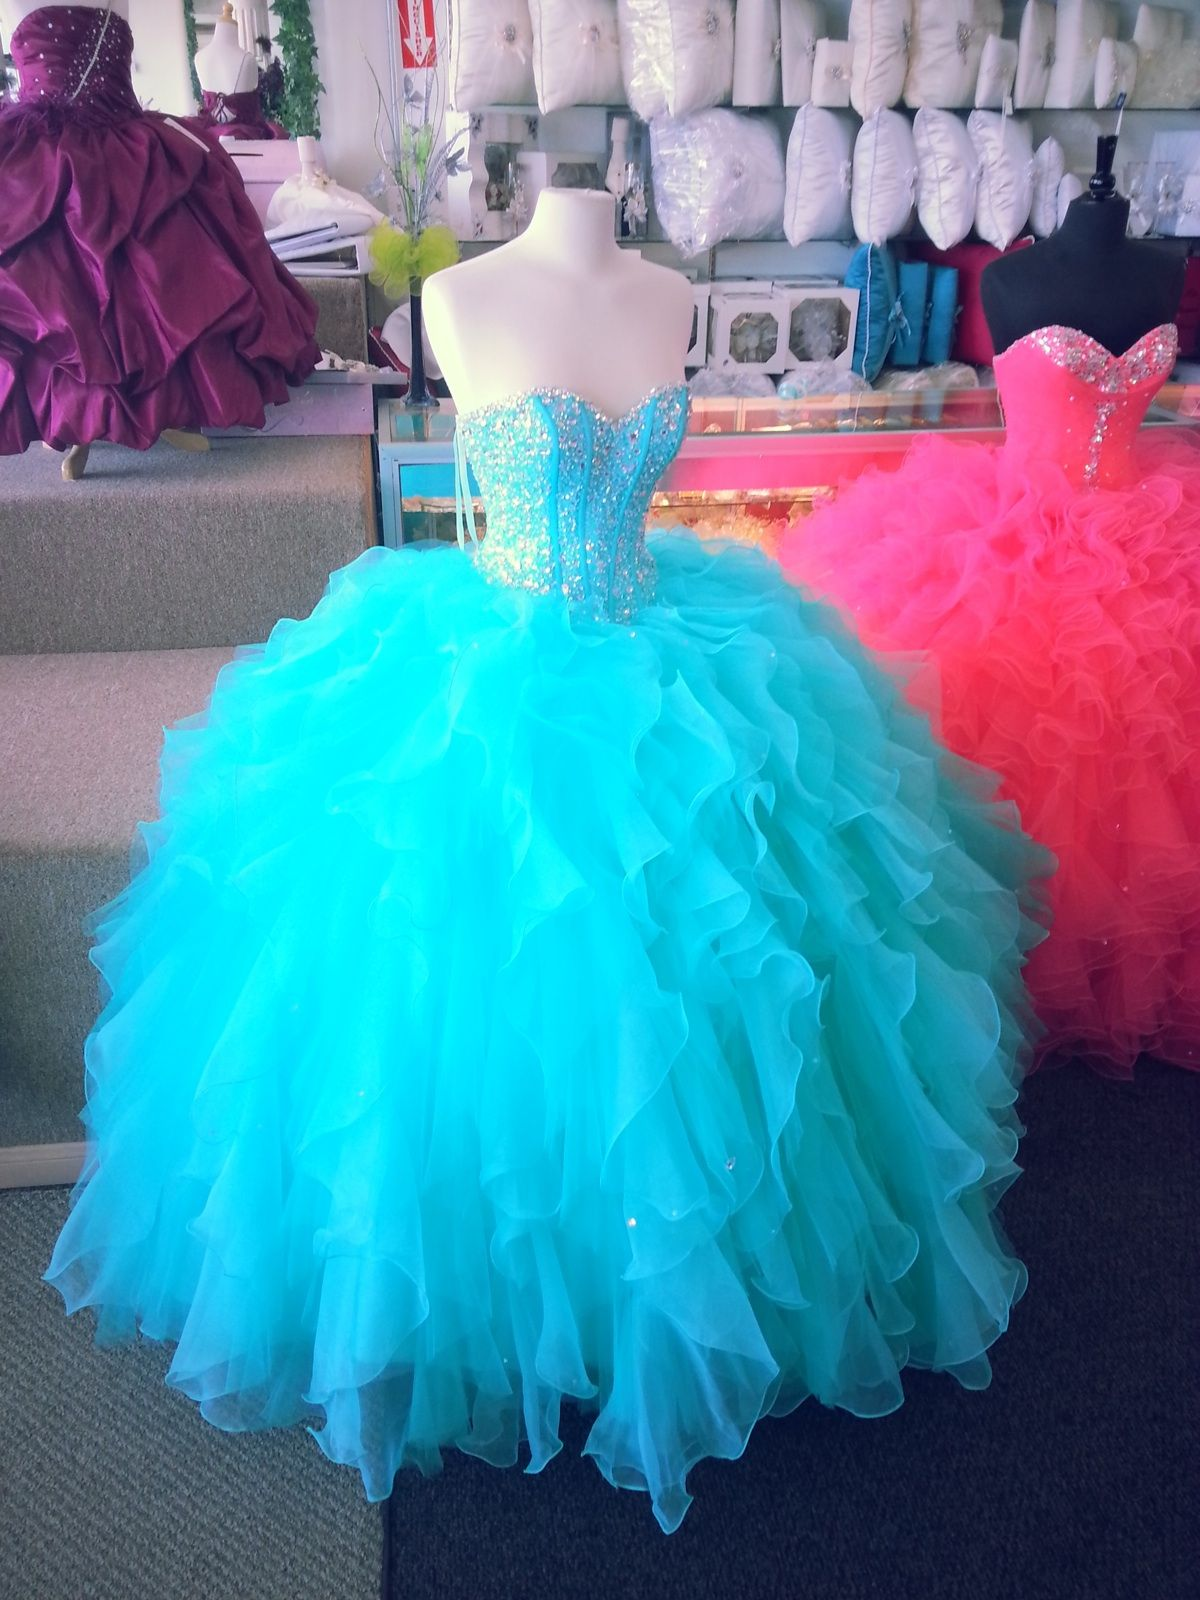 quinceanera dresses houston tx | Quinceanera Dresses | Pinterest ...